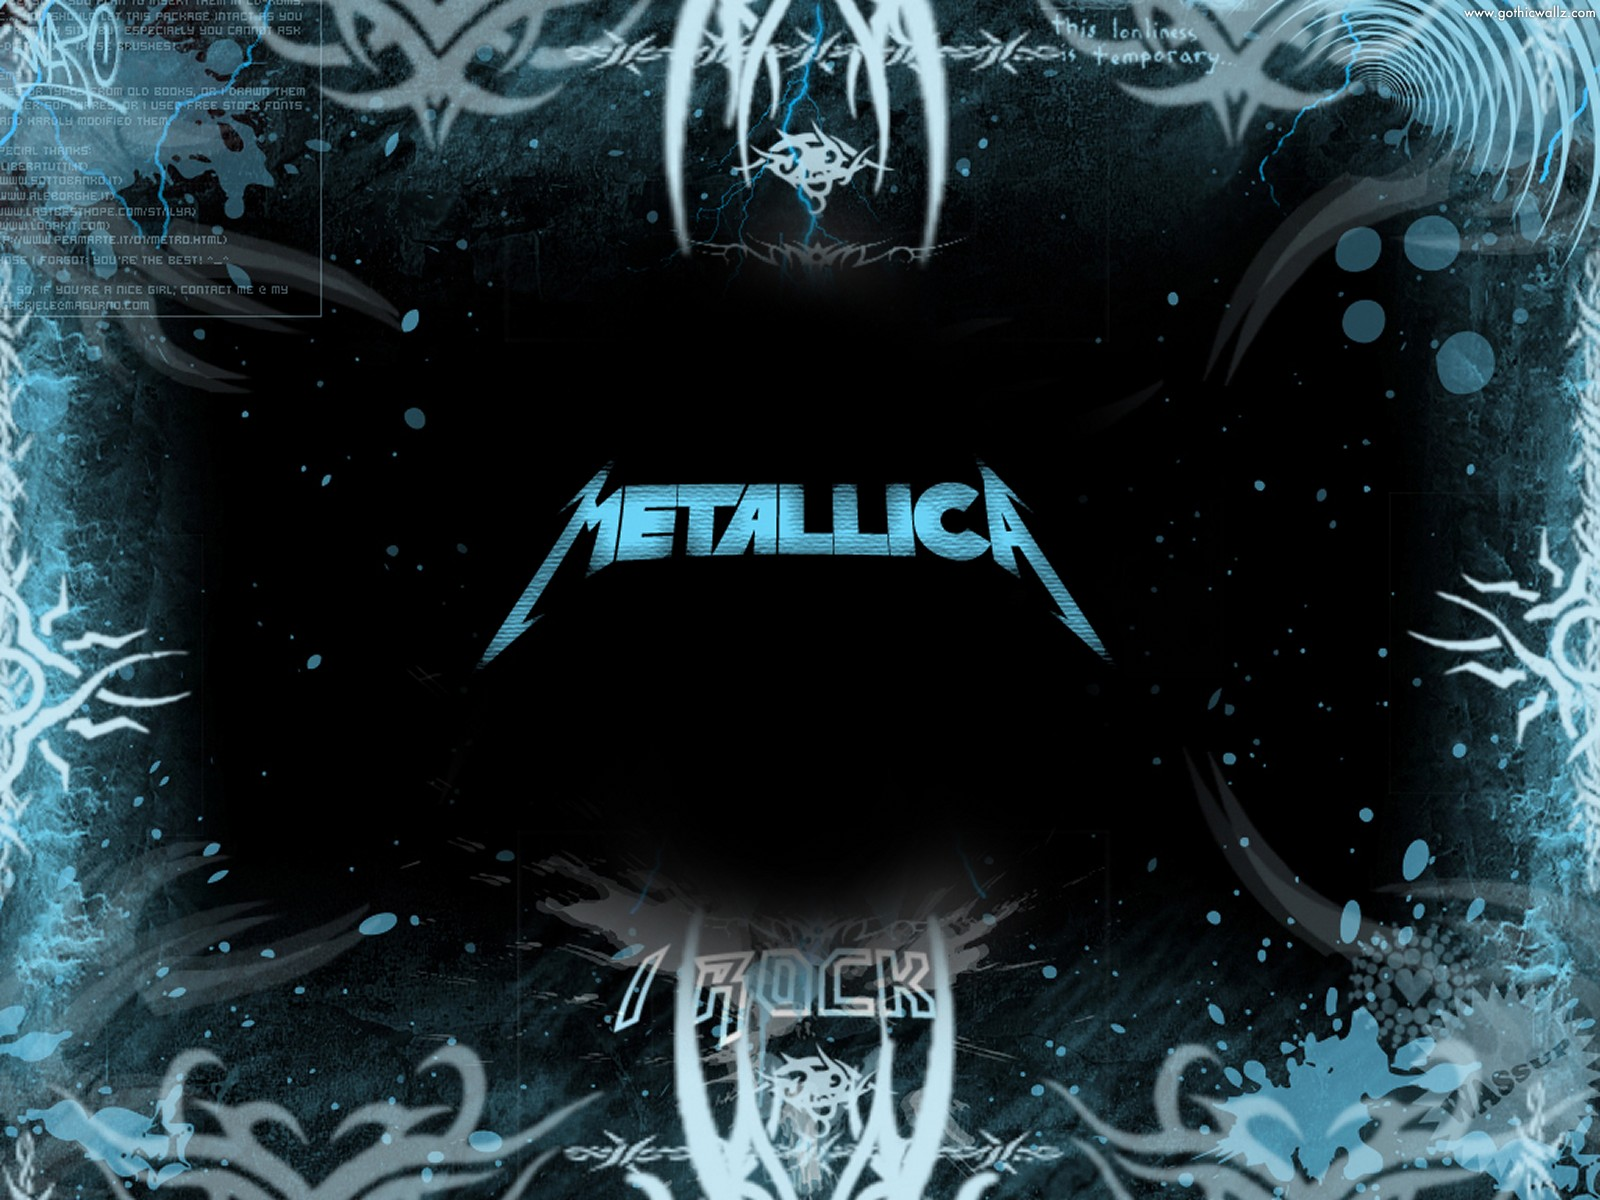 Metallica | Gothic Wallpaper Download